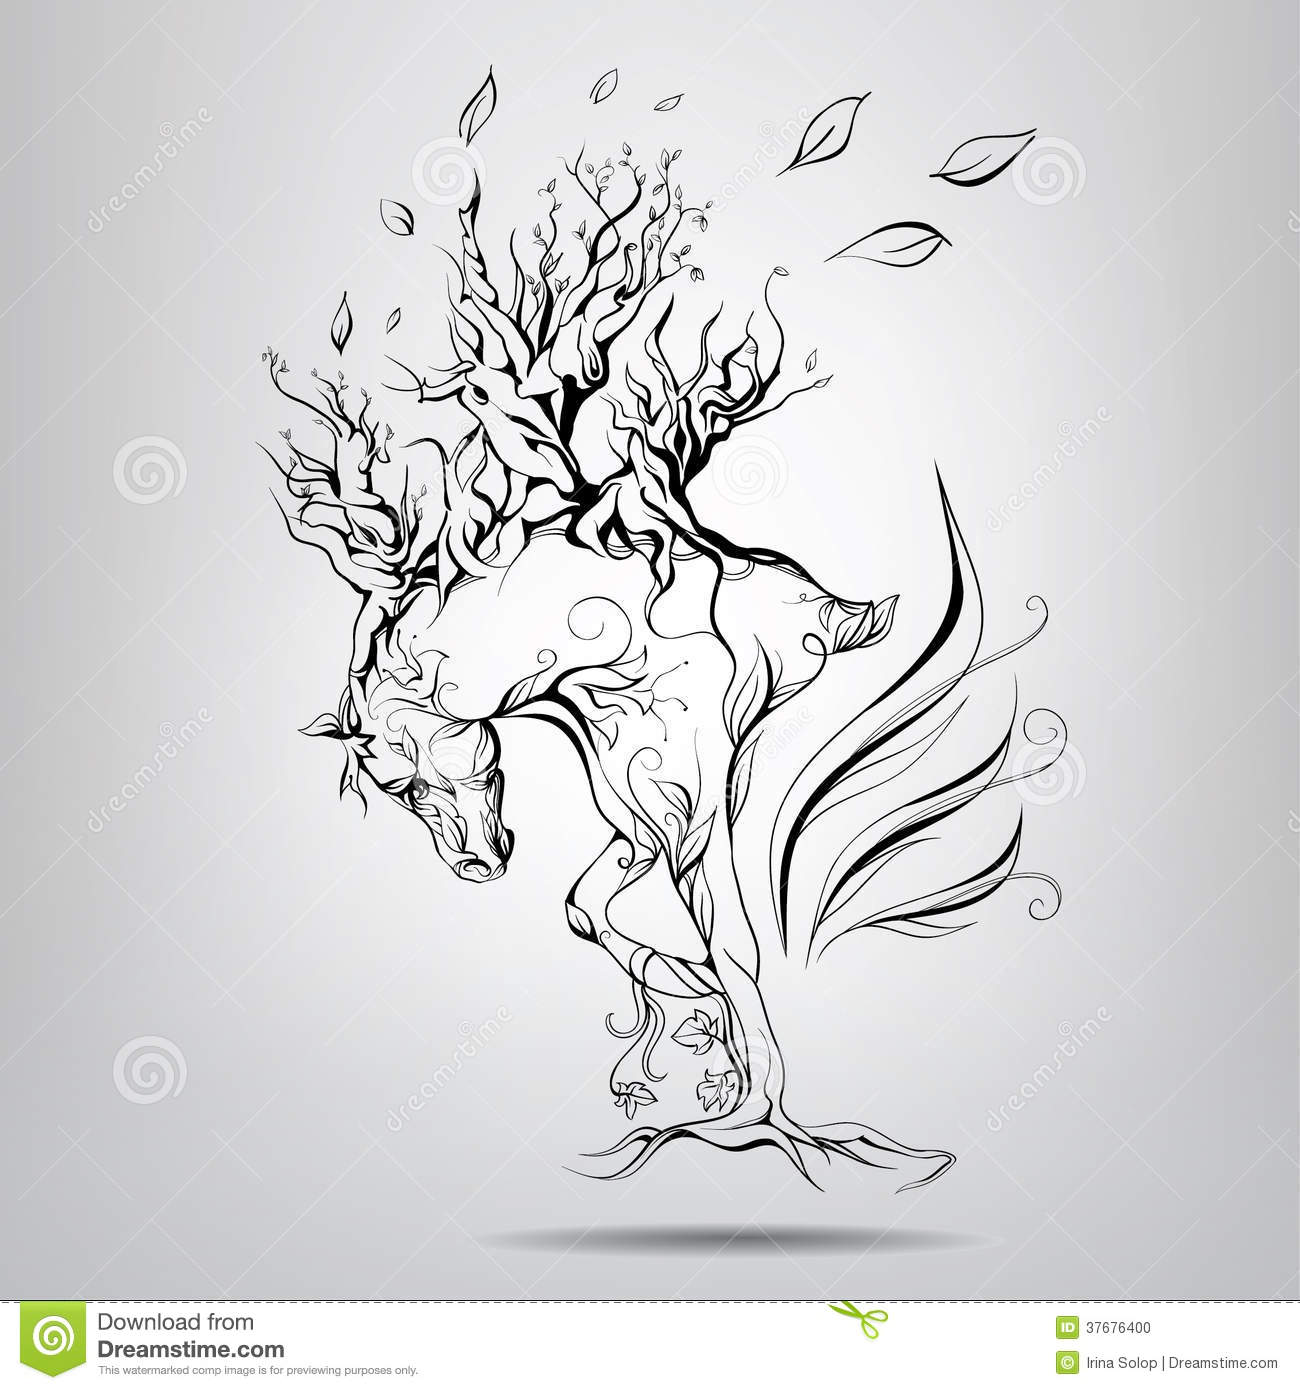 A horse with a mane of branches stock vector image 37676400 for Immagini cavalli stilizzati